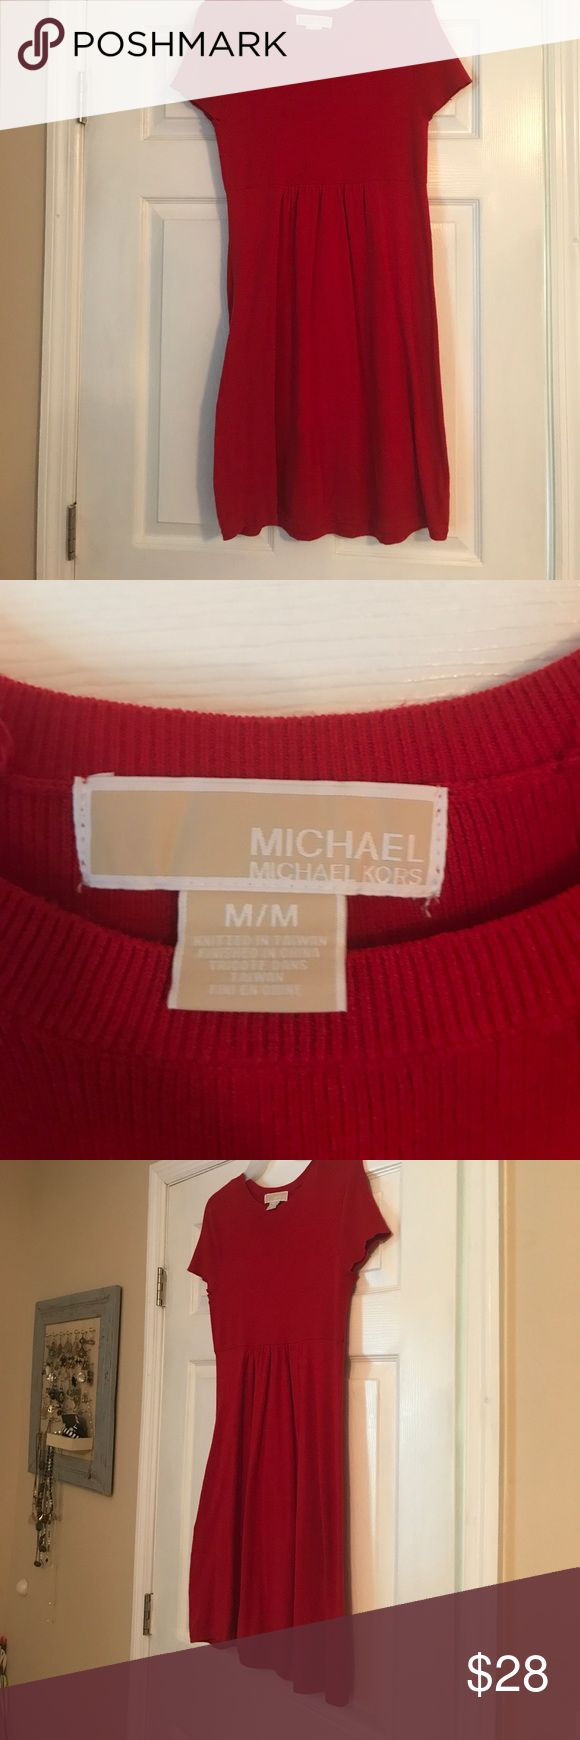 Michael Kors red dress Soft cotton red dress. Perfect to wear alone in summer or with leggings or tights in winter. No rips or stains. Michael Kors Dresses Midi